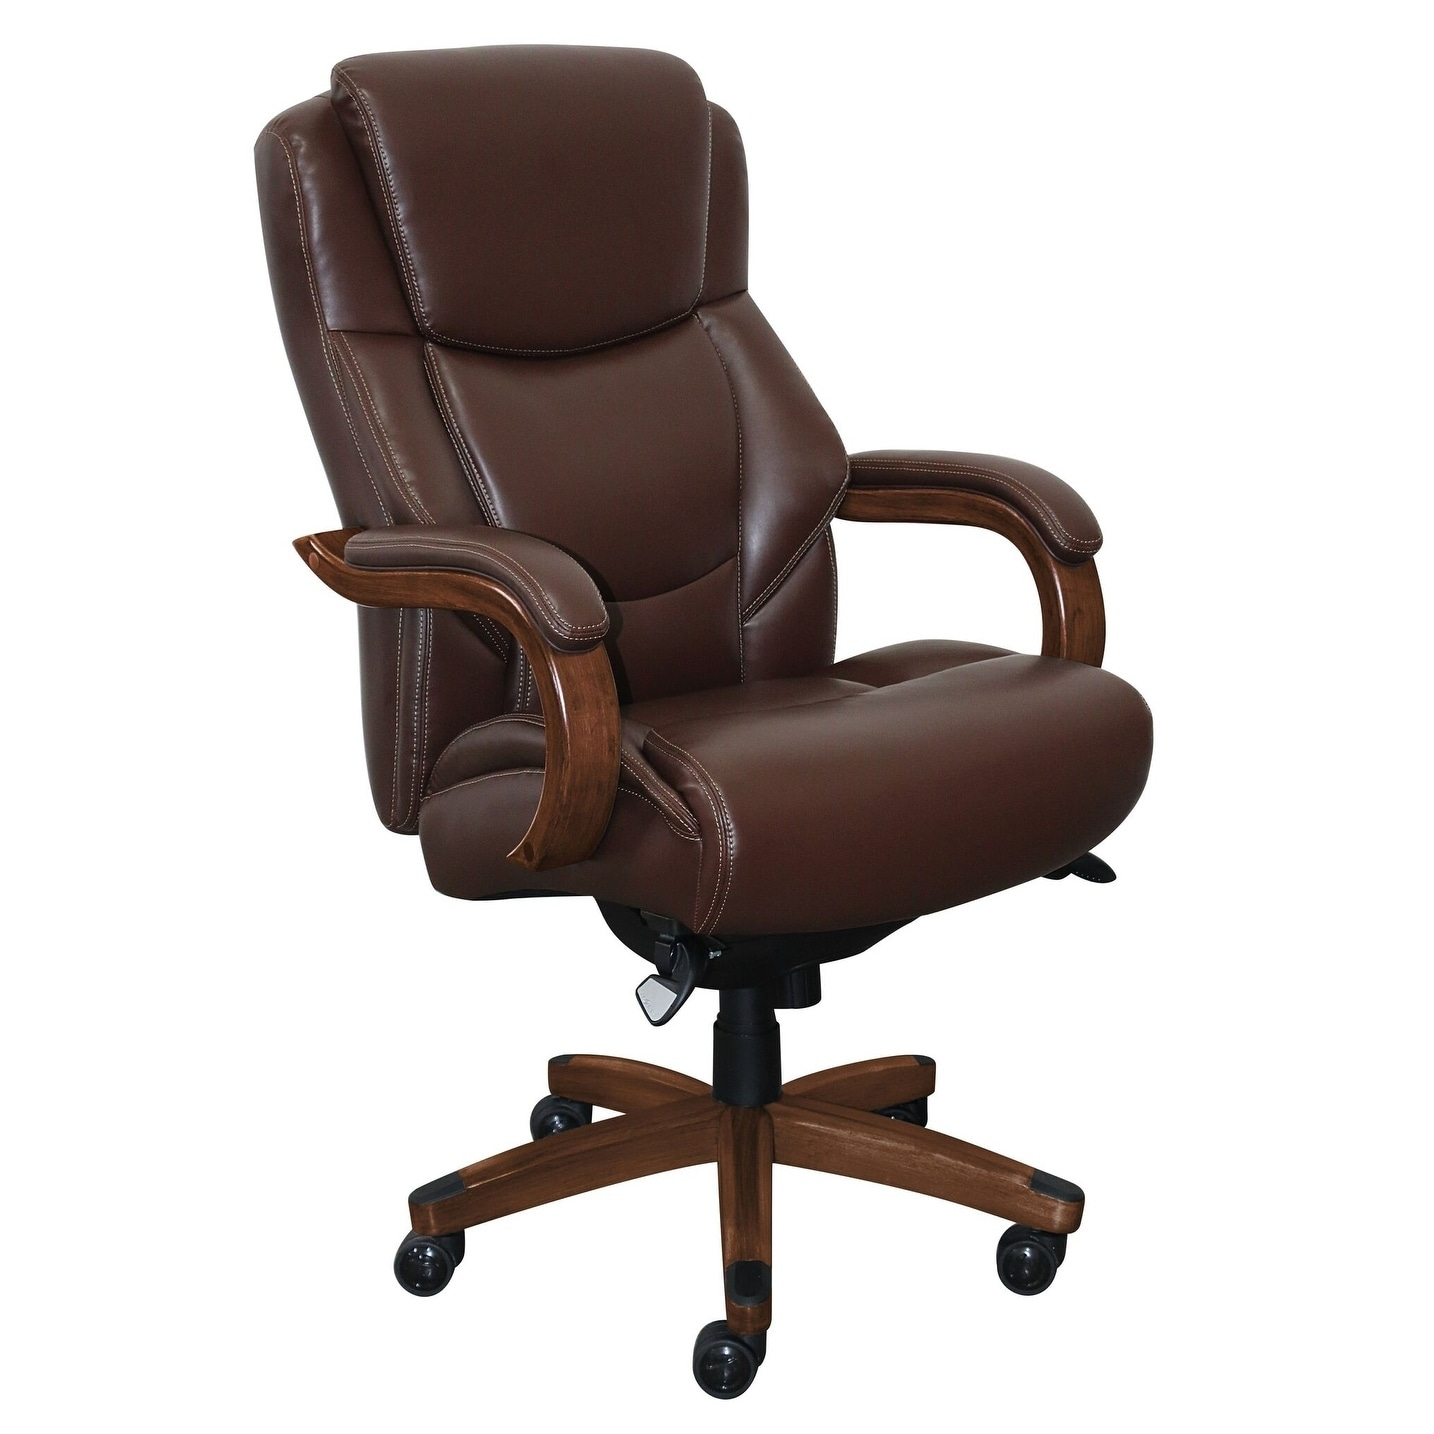 la z boy big tall executive leather office chair black cream slipper shop delano in brown bonded free shipping today overstock com 21122086